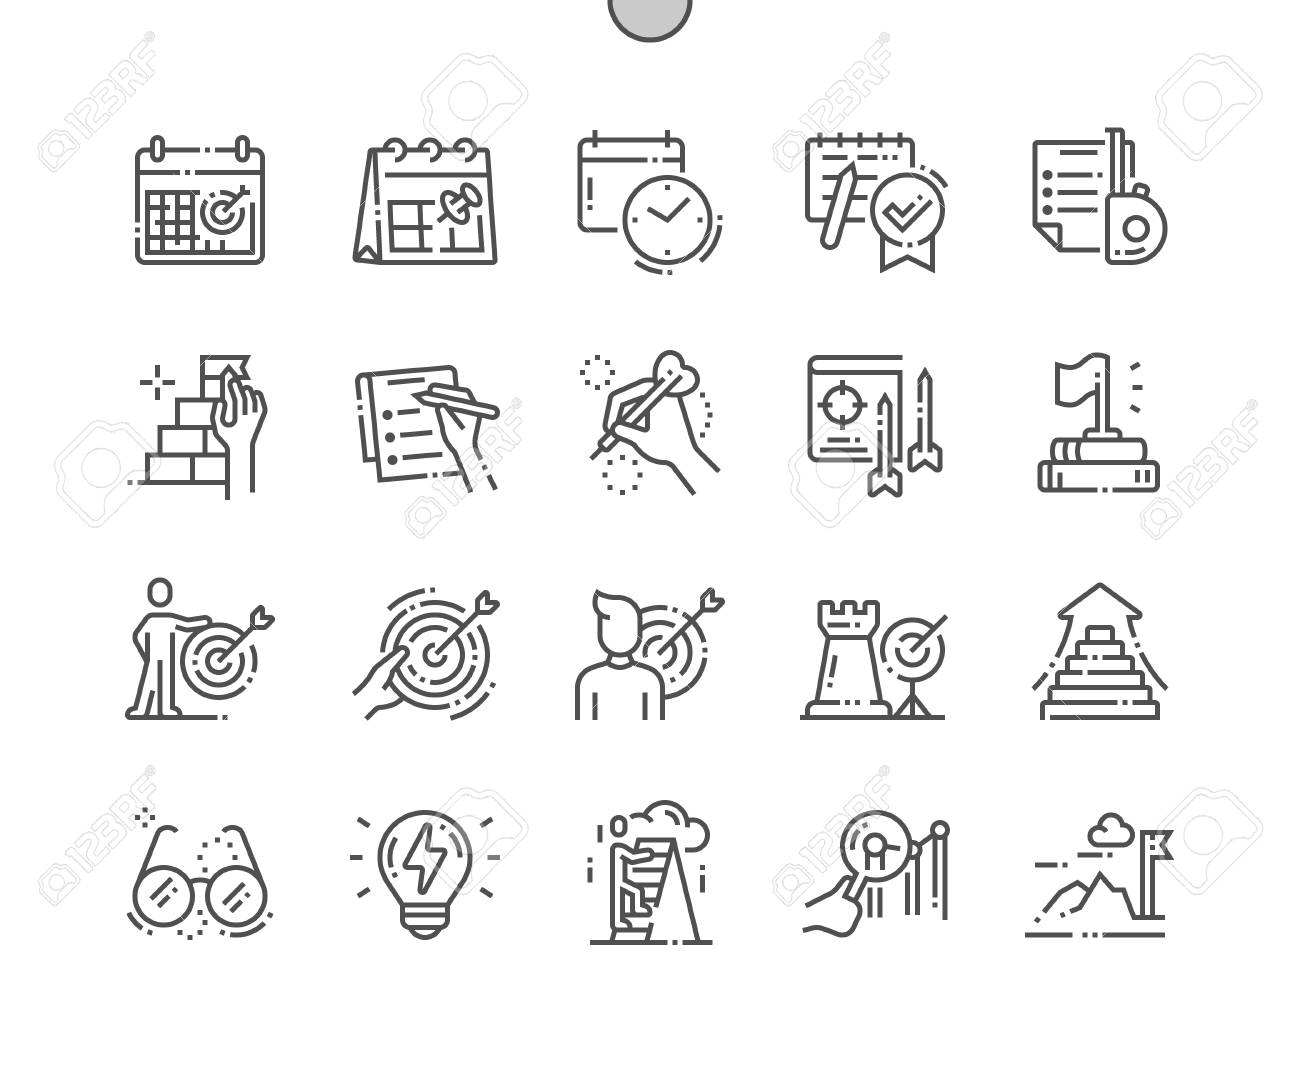 Goal Setting Well-crafted Pixel Perfect Vector Thin Line Icons 30 2x Grid for Web Graphics and Apps. Simple Minimal Pictogram - 125640960